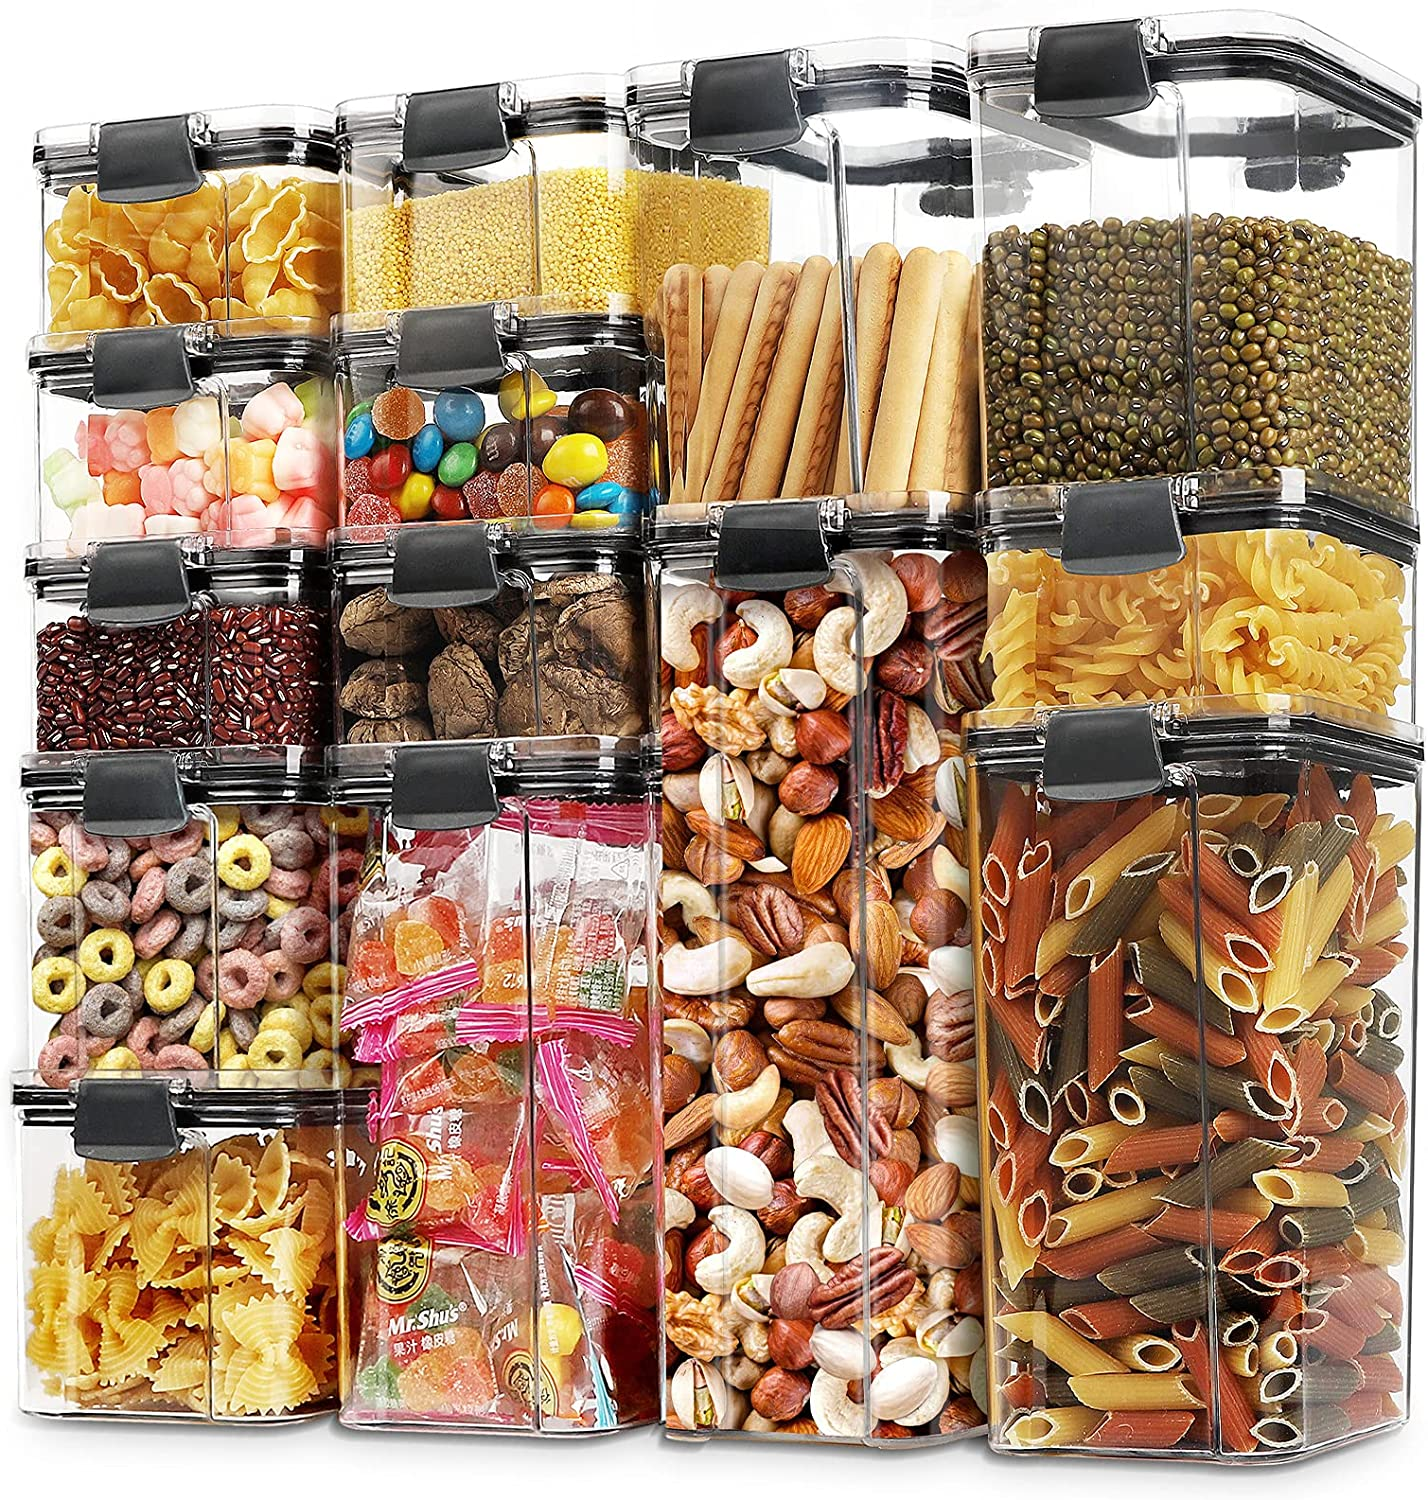 14 Topics on TV Pack Airtight Food Storage Container Plastic Weekly update Free BPA Ce Set